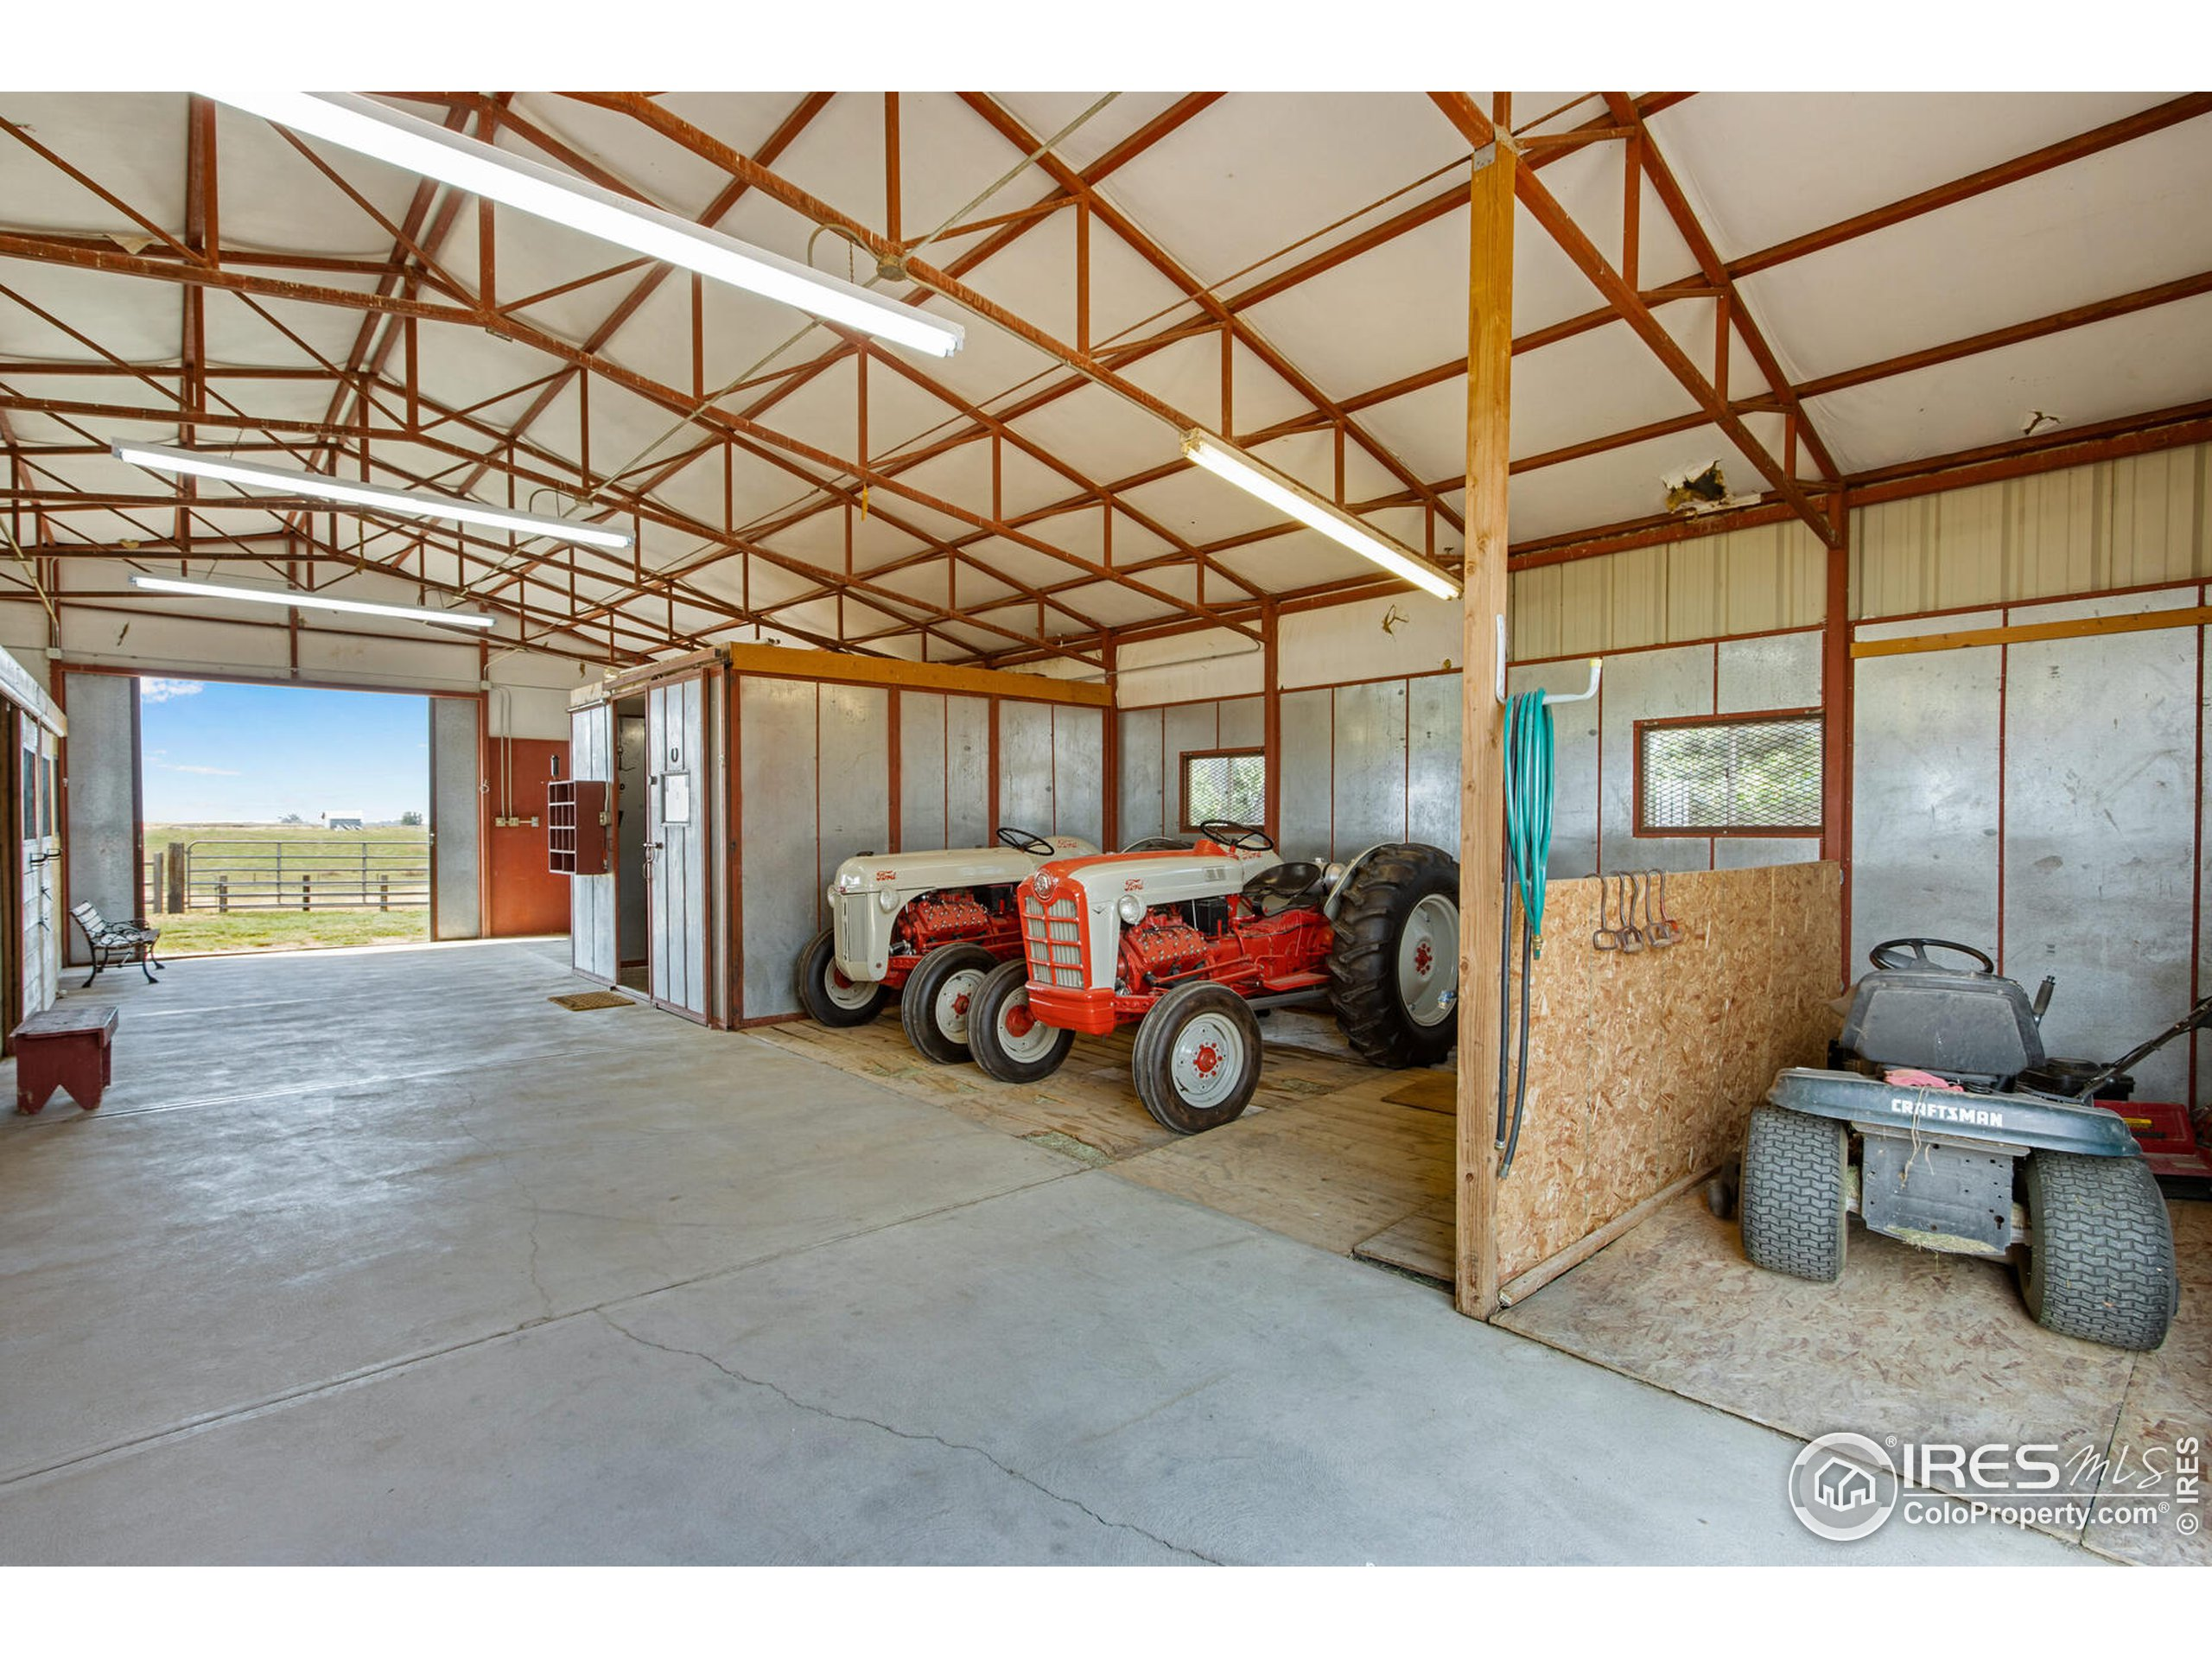 48 X 36 custom built metal/insulated 4 stall barn with overhang.  Tack room + cross tie area. Hay storage + shaving areas.